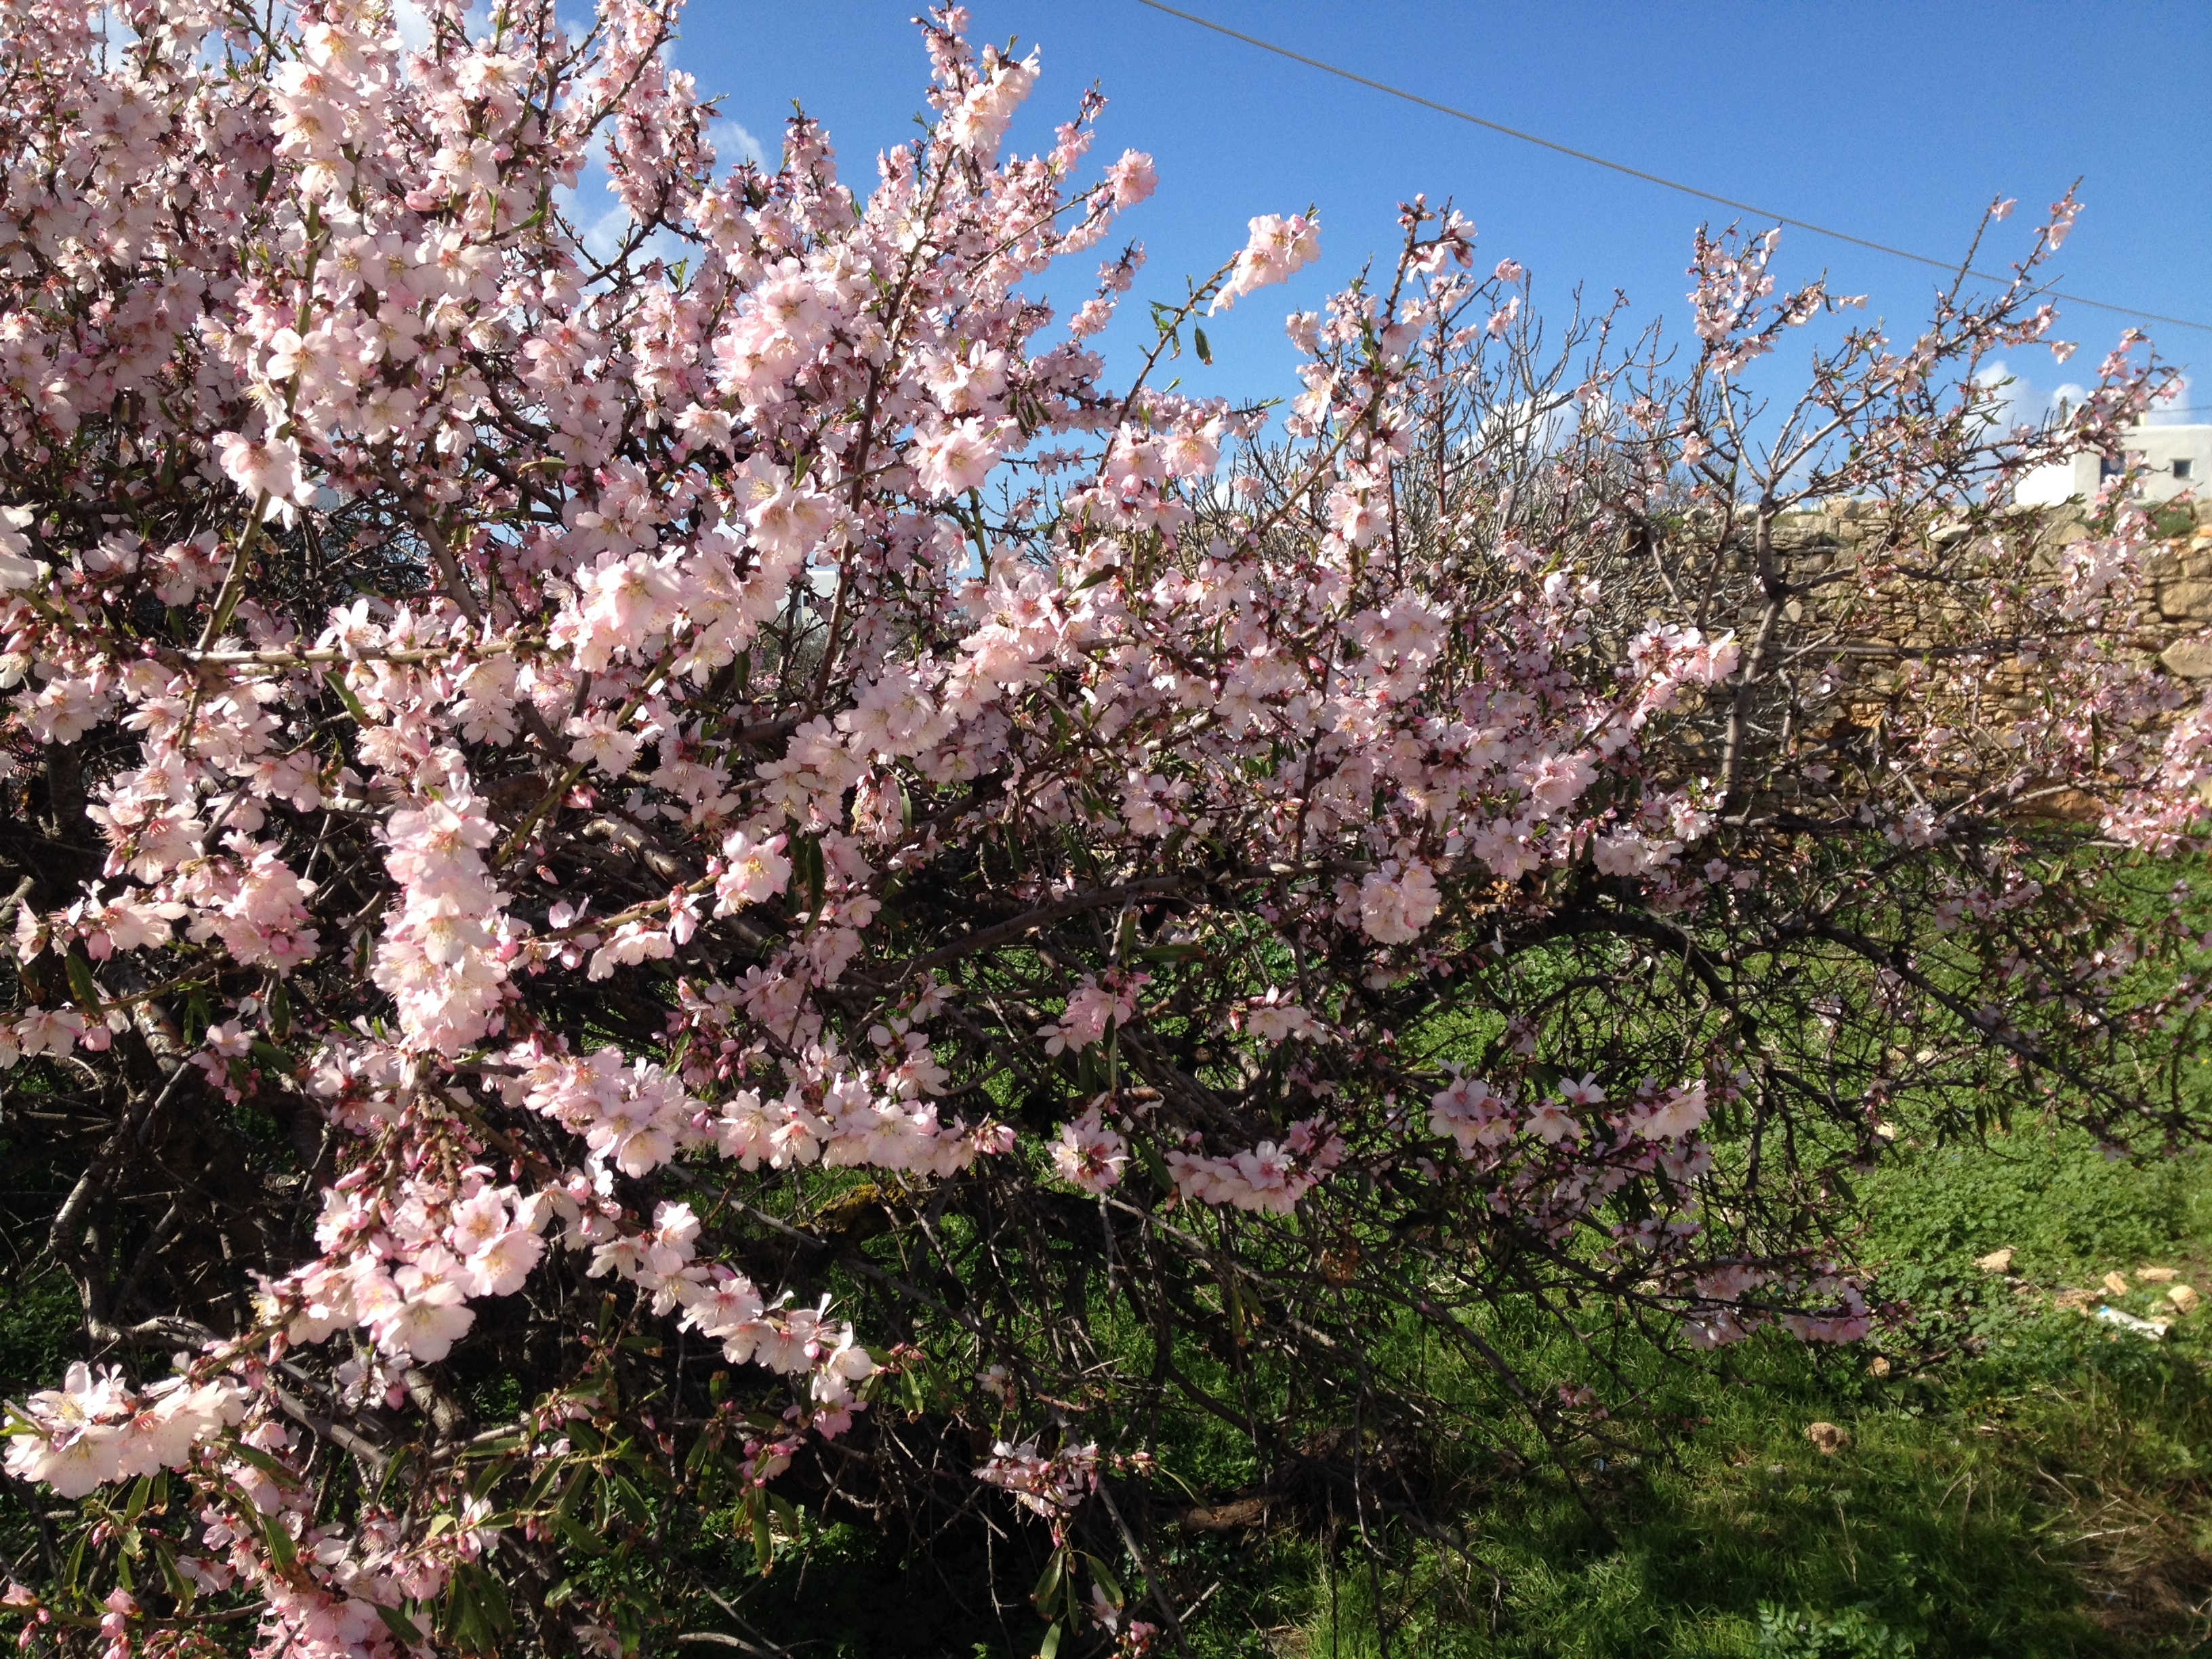 Almond-trees in blossom